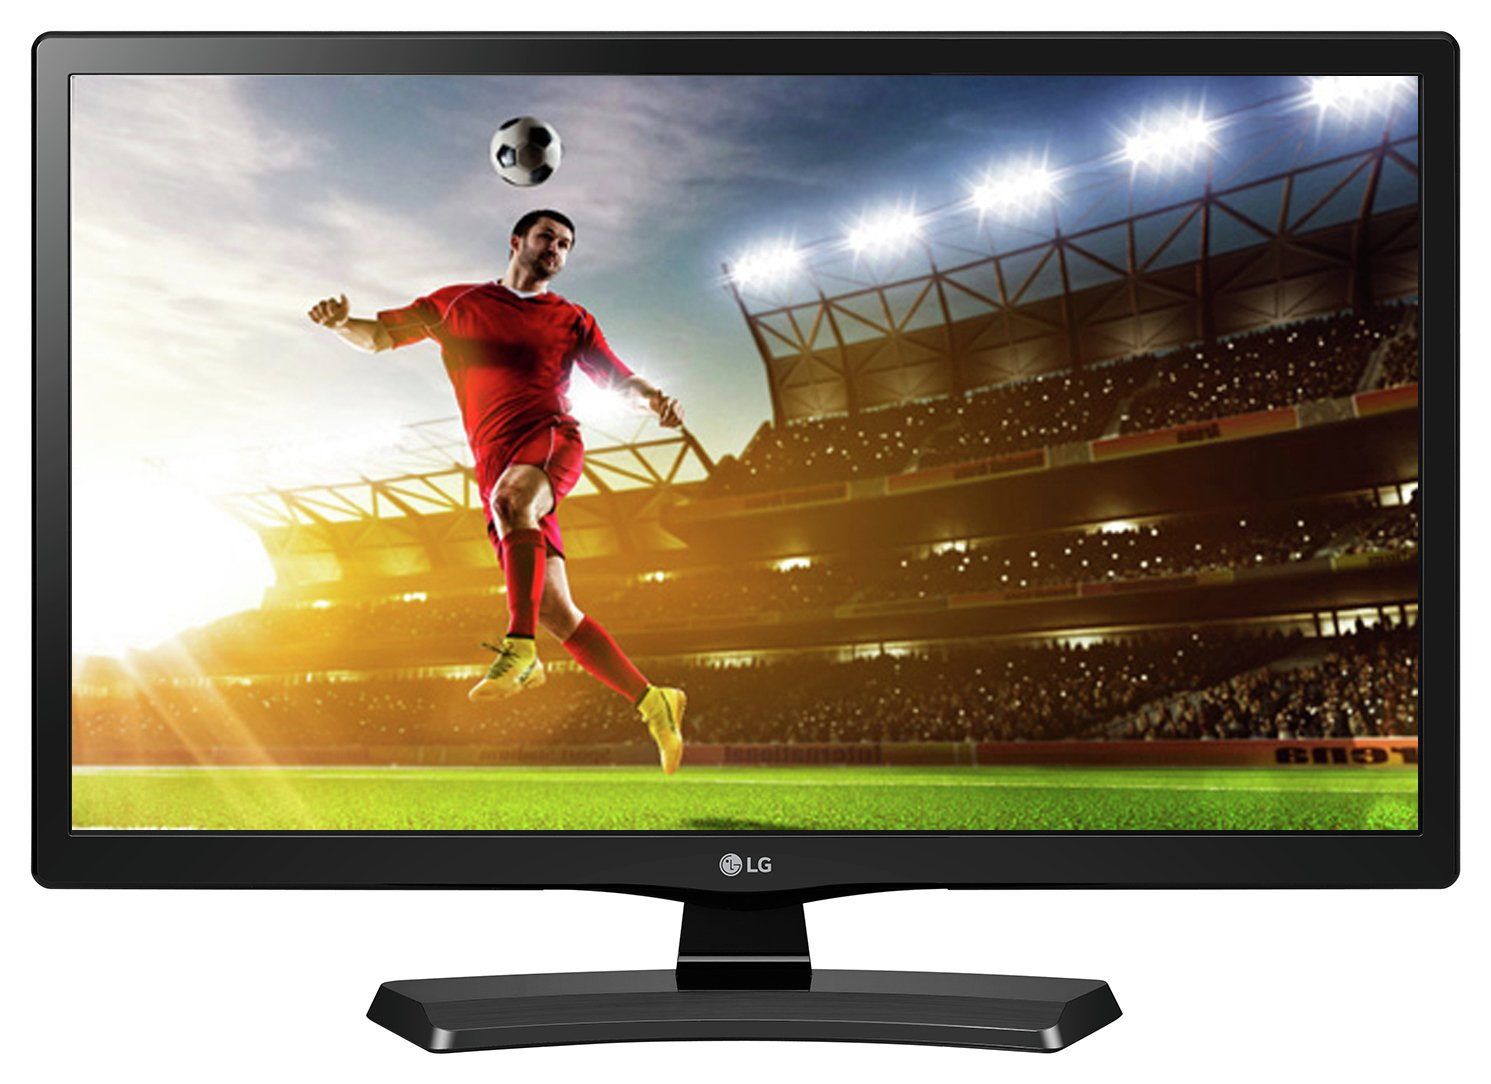 samsung 24 inch tv. click to zoom samsung 24 inch tv h